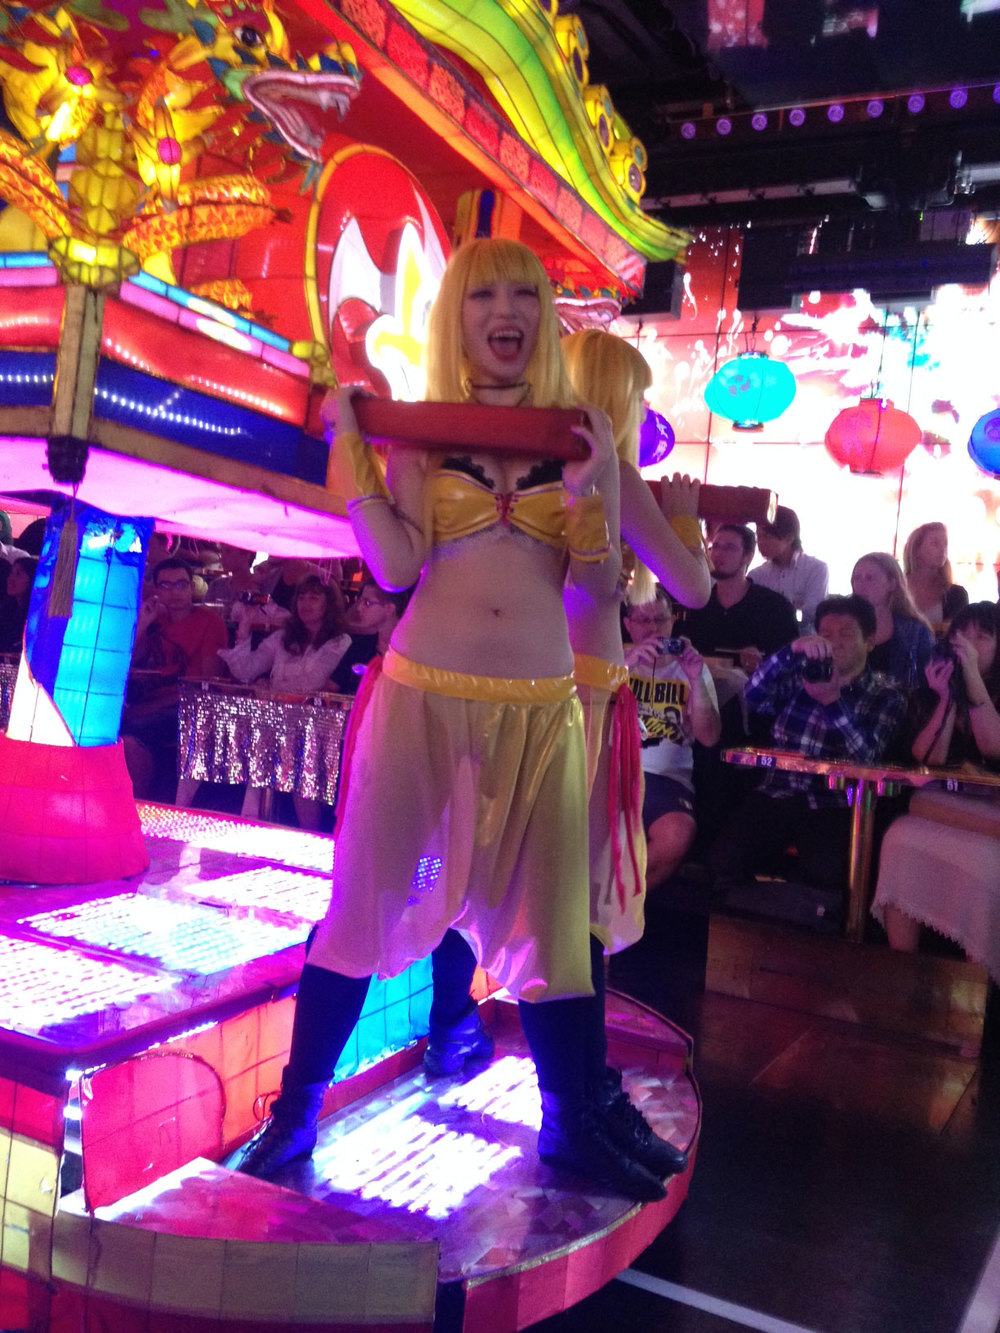 Robot Restaurant (human) dancer, carrying a neon mobile shrine.